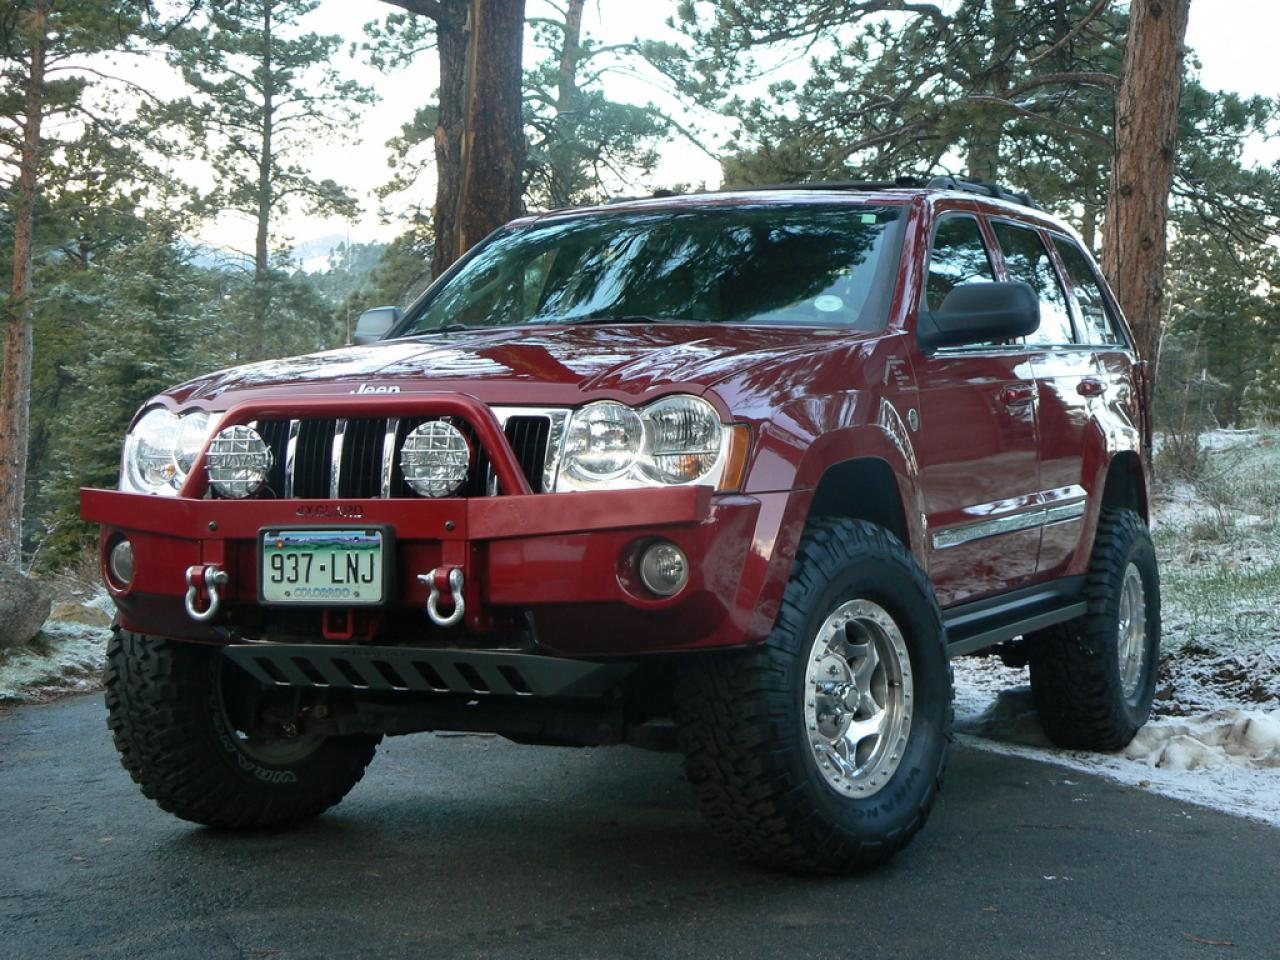 2006 jeep grand cherokee information and photos zombiedrive. Black Bedroom Furniture Sets. Home Design Ideas